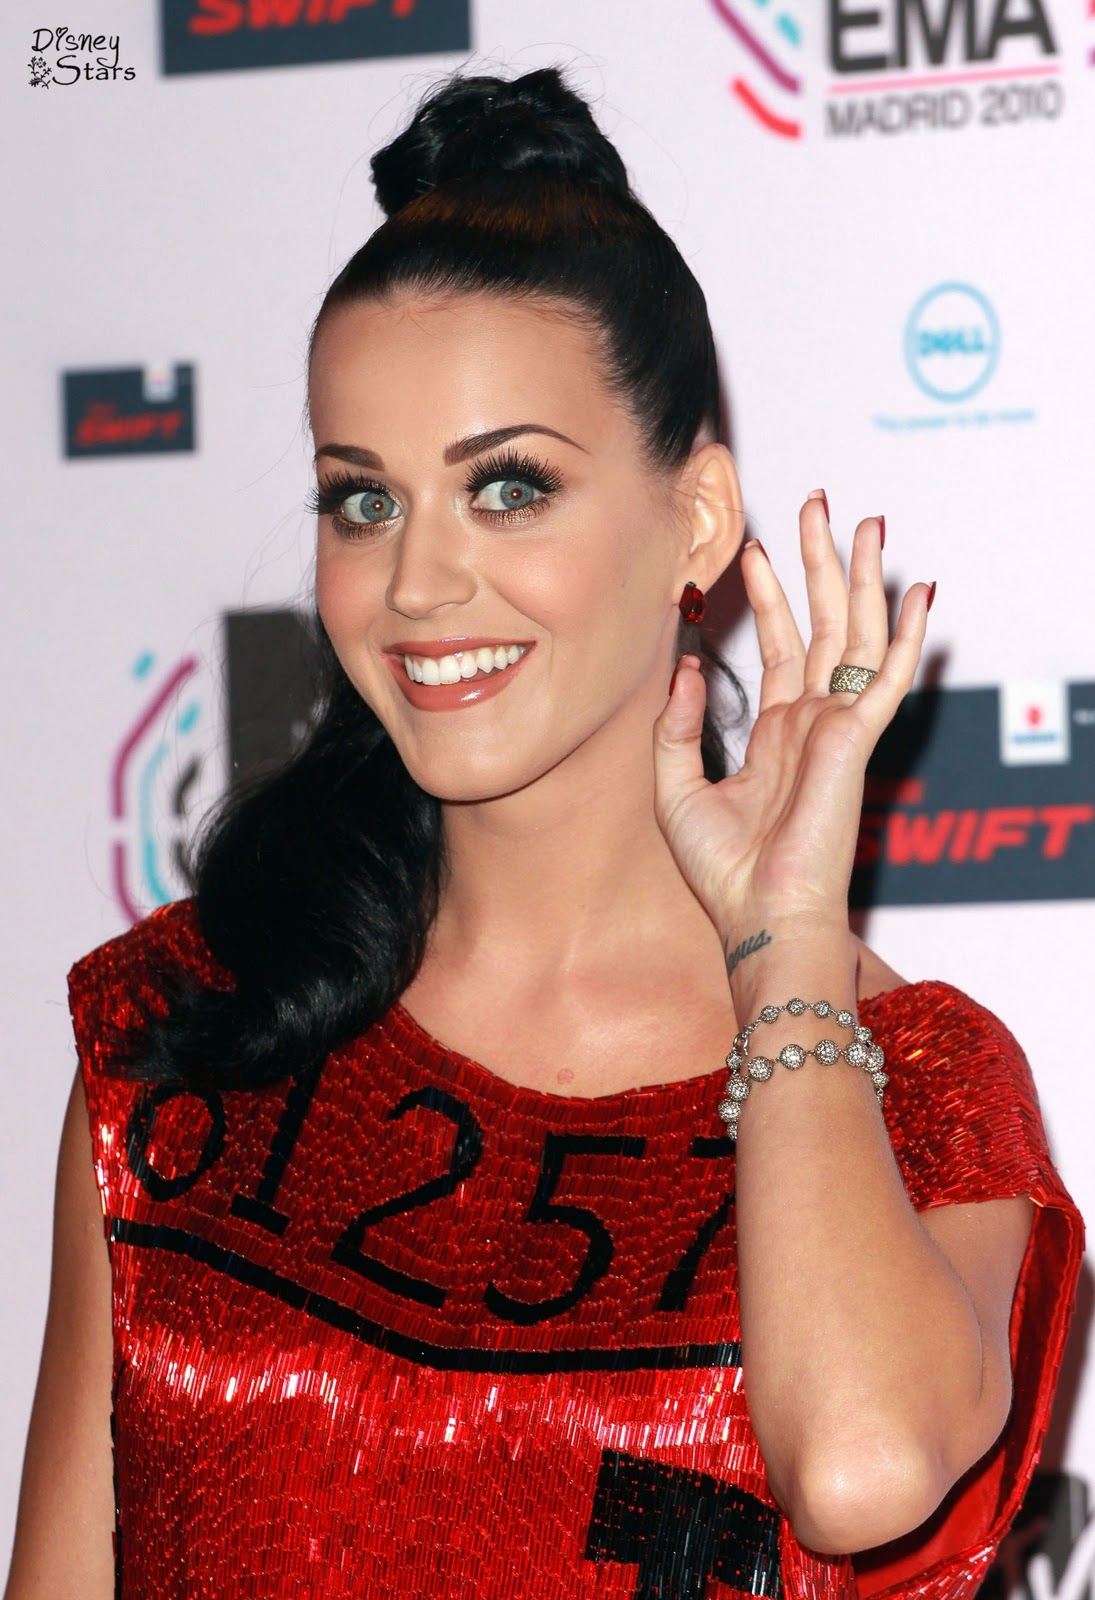 http://1.bp.blogspot.com/_mibZCo3wqkQ/TNf7o_yFM4I/AAAAAAAAFUI/atsrv0uXNcM/s1600/MTV-Europe-Music-Awards-2010-katy-perry-16804986-1741-2560.jpg